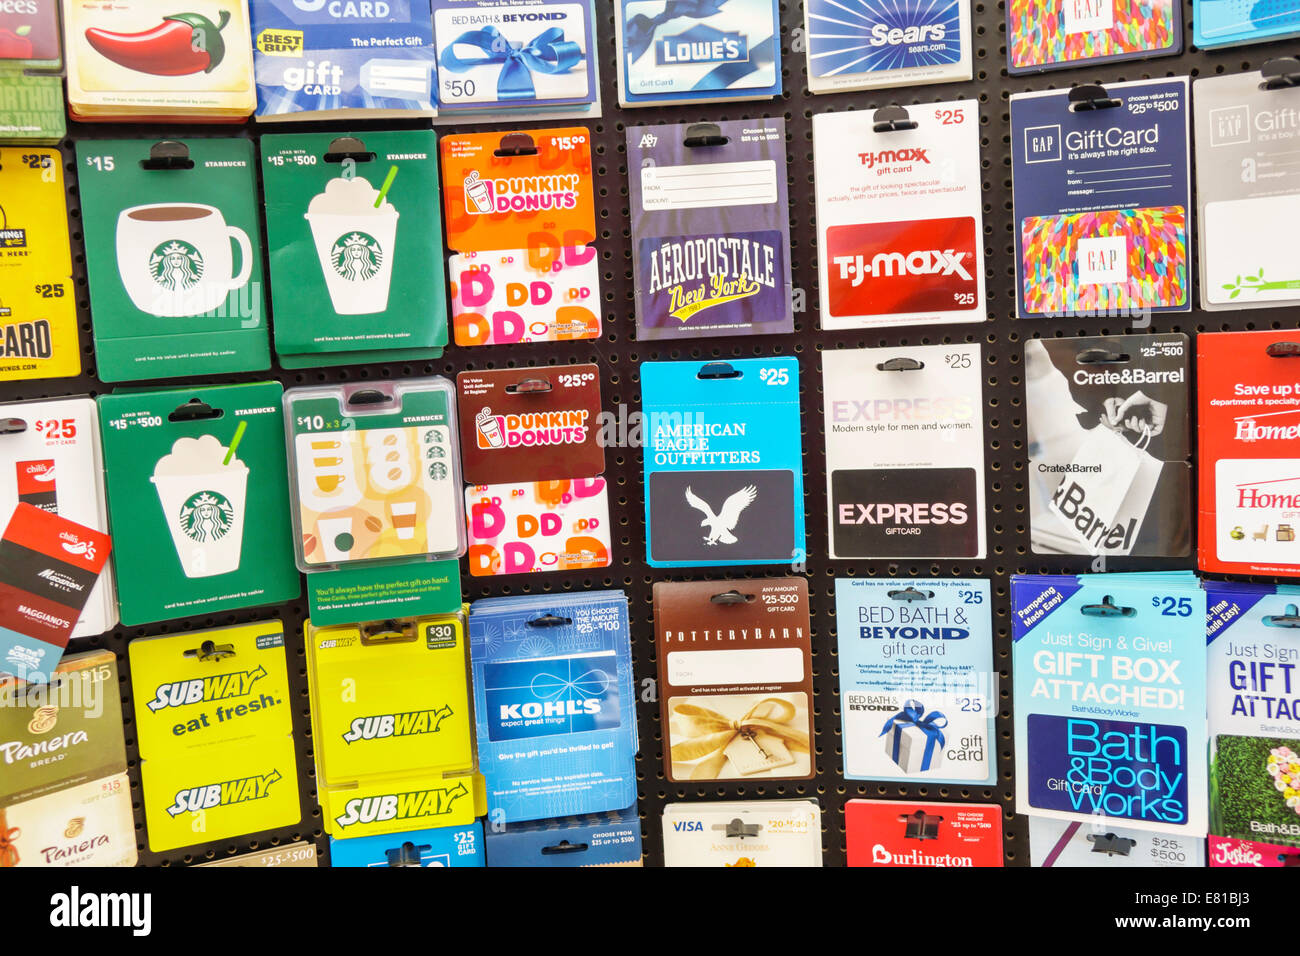 Gift cards stock photos gift cards stock images alamy miami beach florida walgreens sale display organized gift cards starbucks dunkin donuts tj maxx subway negle Gallery